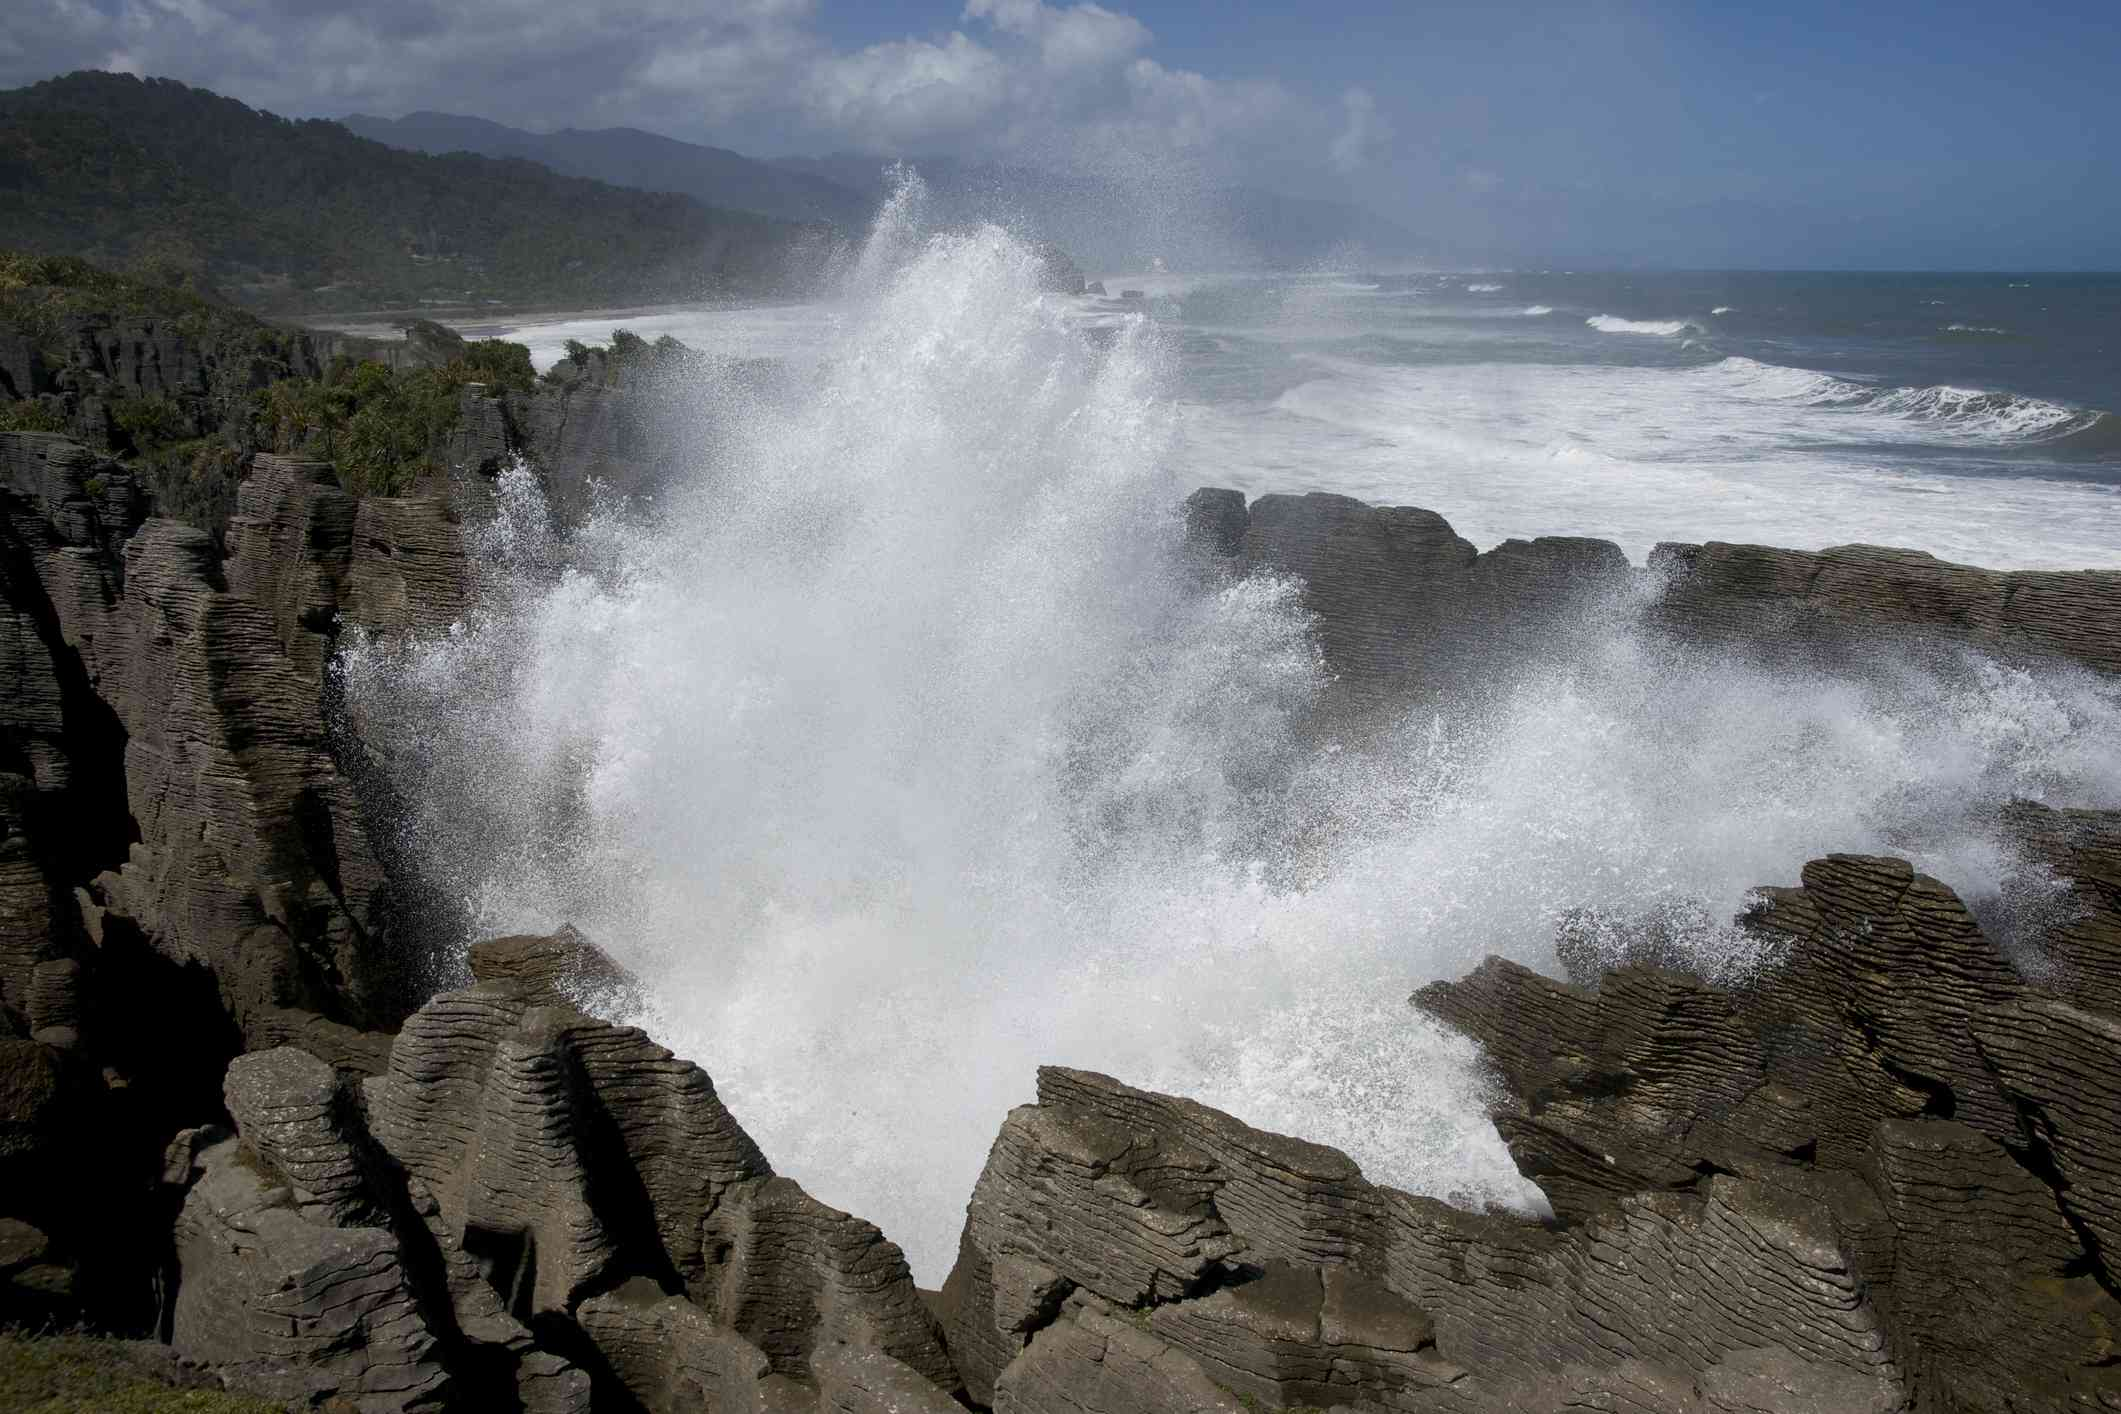 blowhole pushing water into the air with sea in background